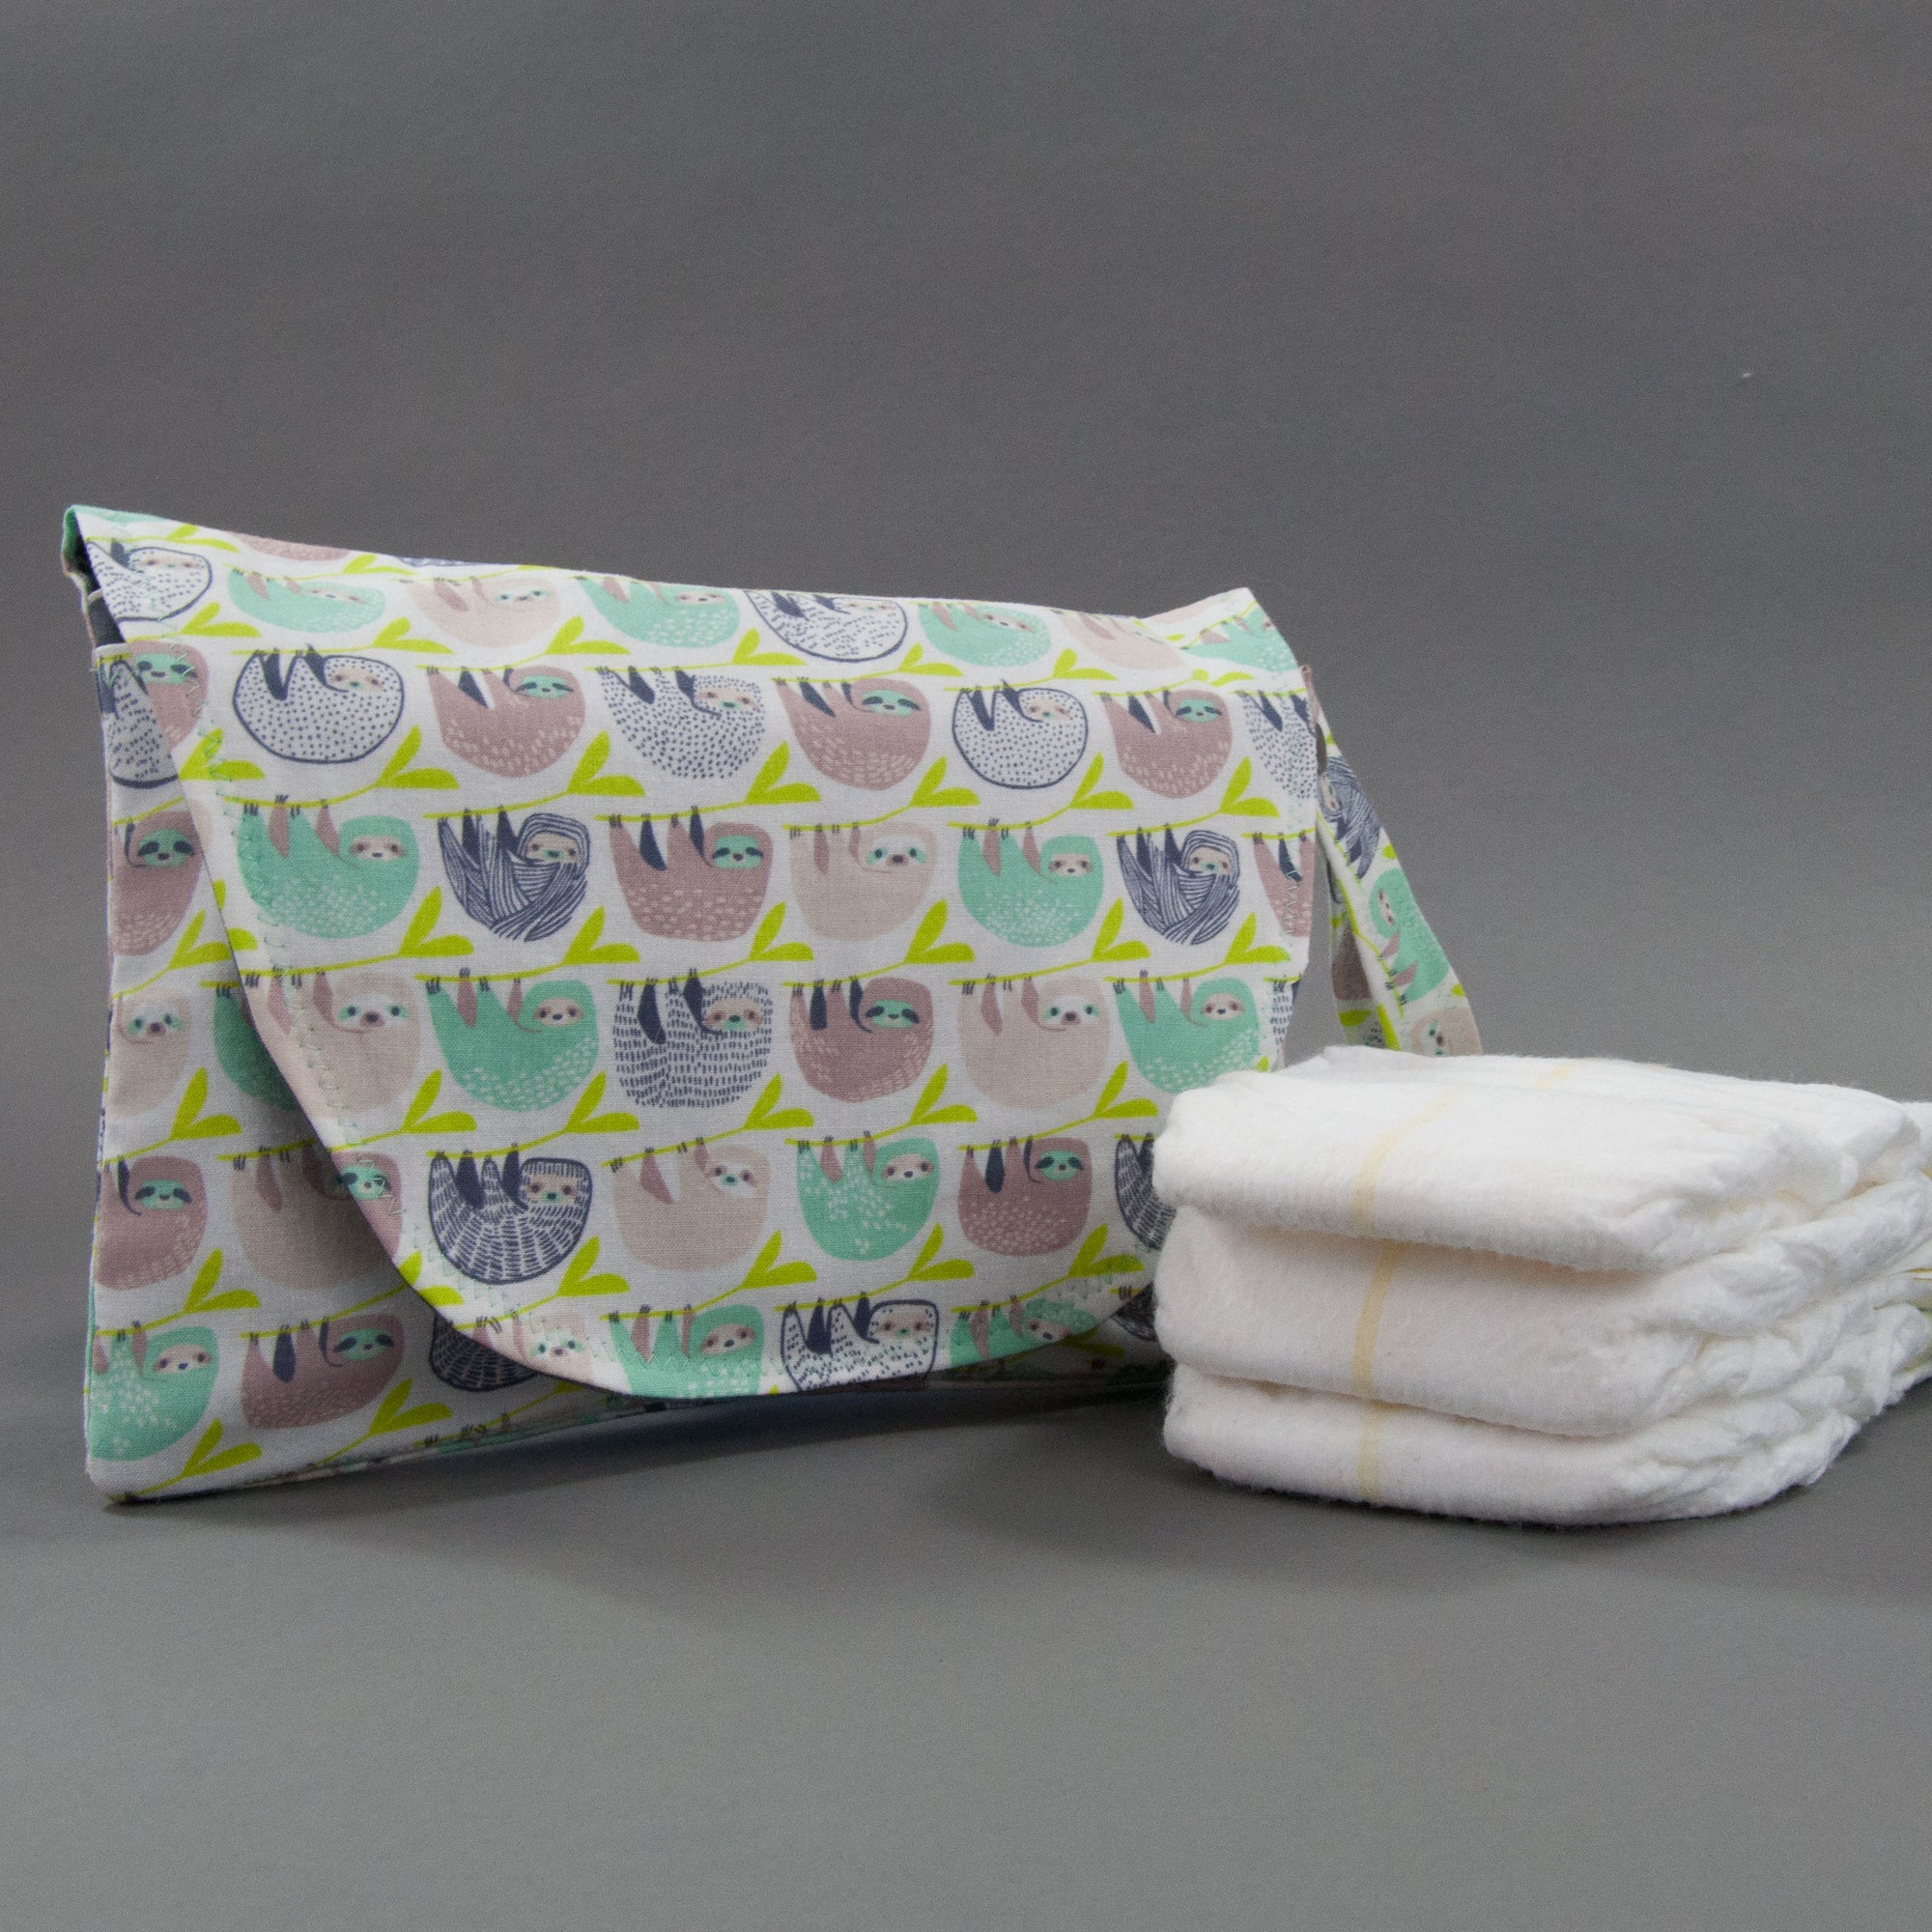 Sloths Diaper + Wipe Clutch, Diaper + Wipe Clutch, - MarshMueller